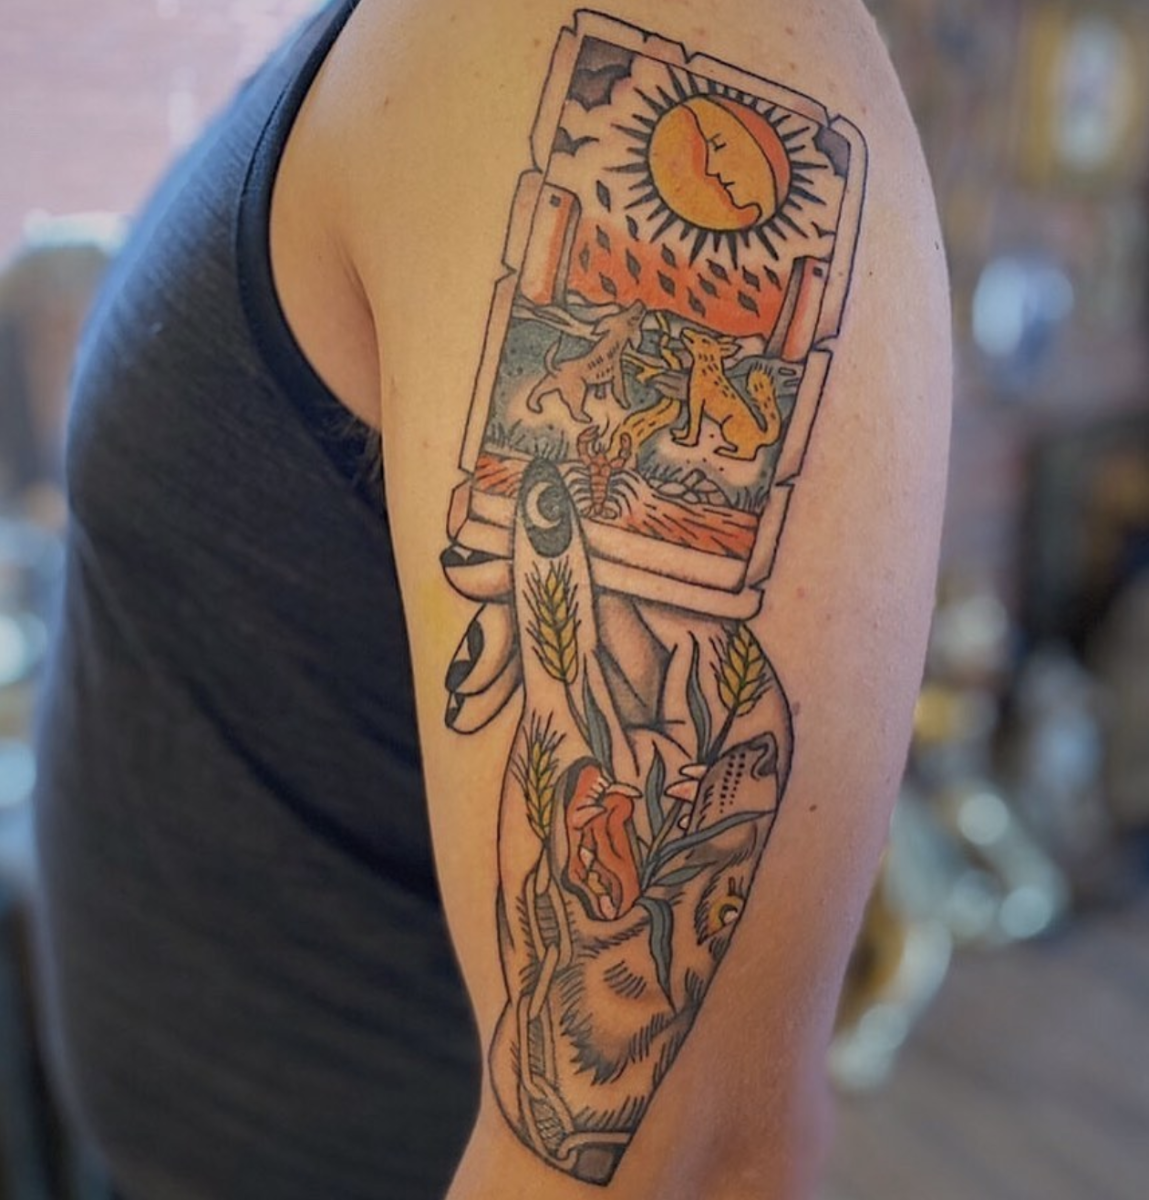 Tattoo by Caige Baker (@caigebaker on Instagram) in Calgary, Alberta (the Moon in the Rider-Waite Deck): Showing a card with the hand that drew it is an imaginative design choice.